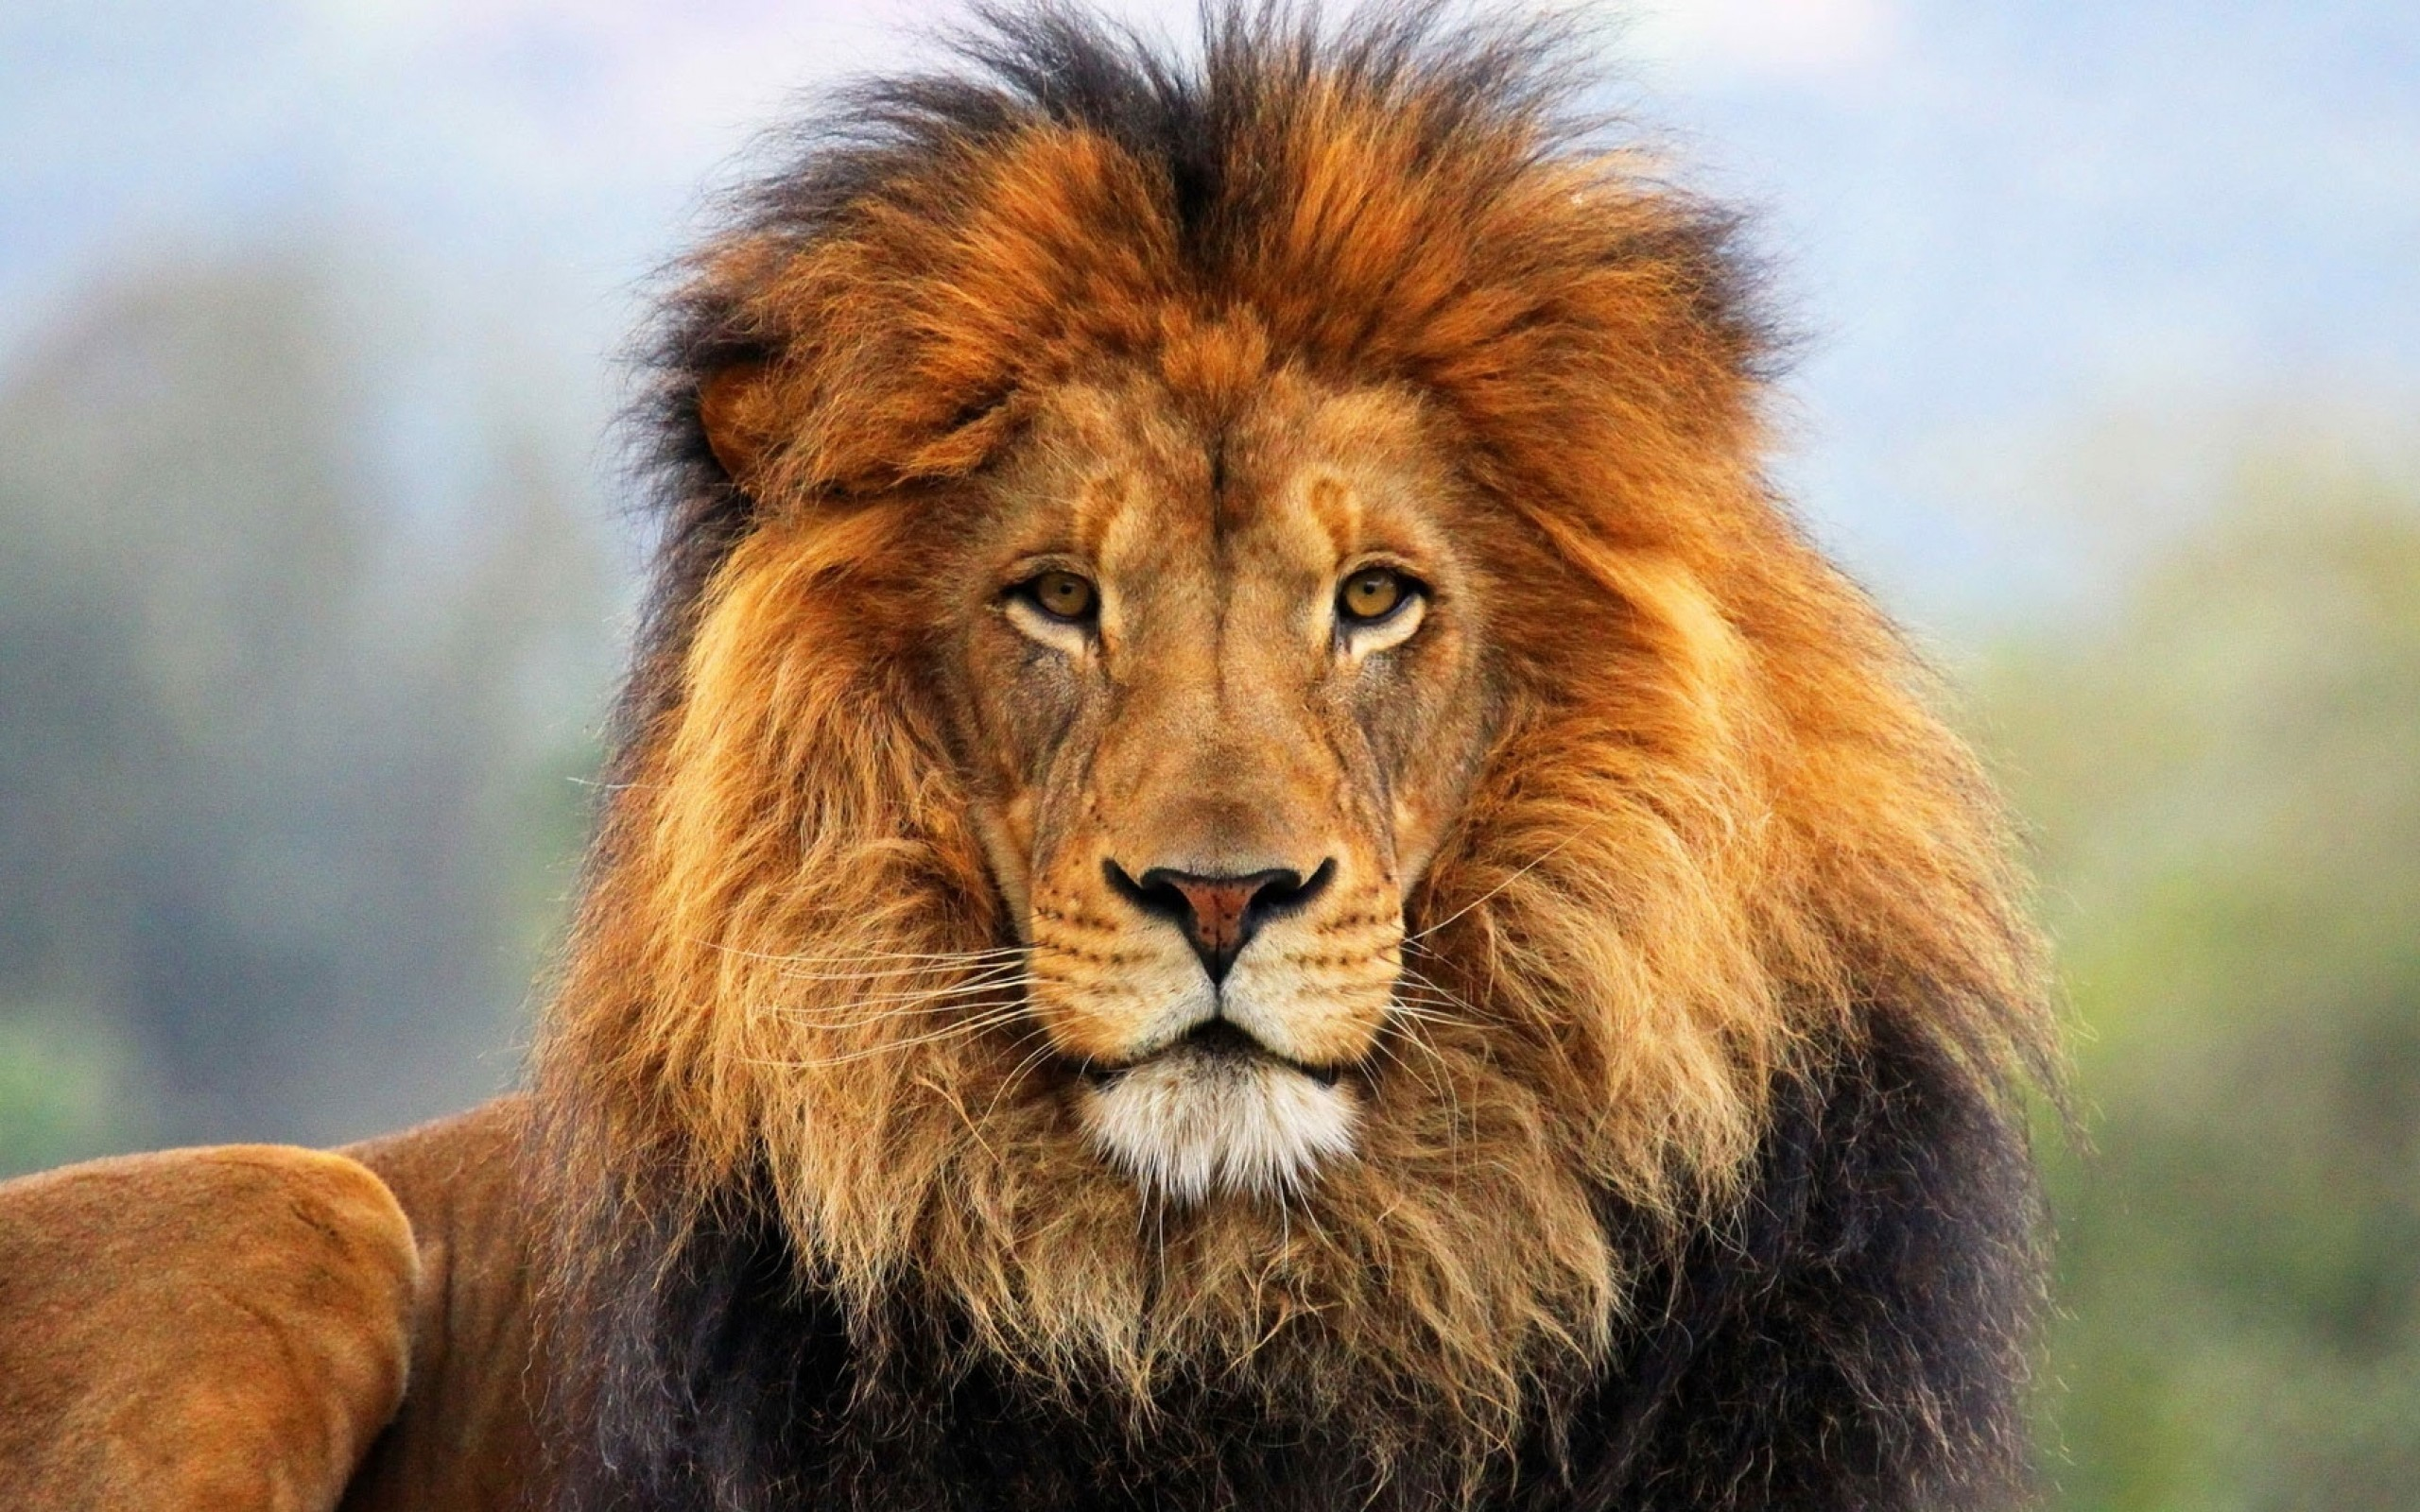 Lion and Tiger – Hybrid Animals   Animal   Pinterest   Lions, Lions photos  and Animal